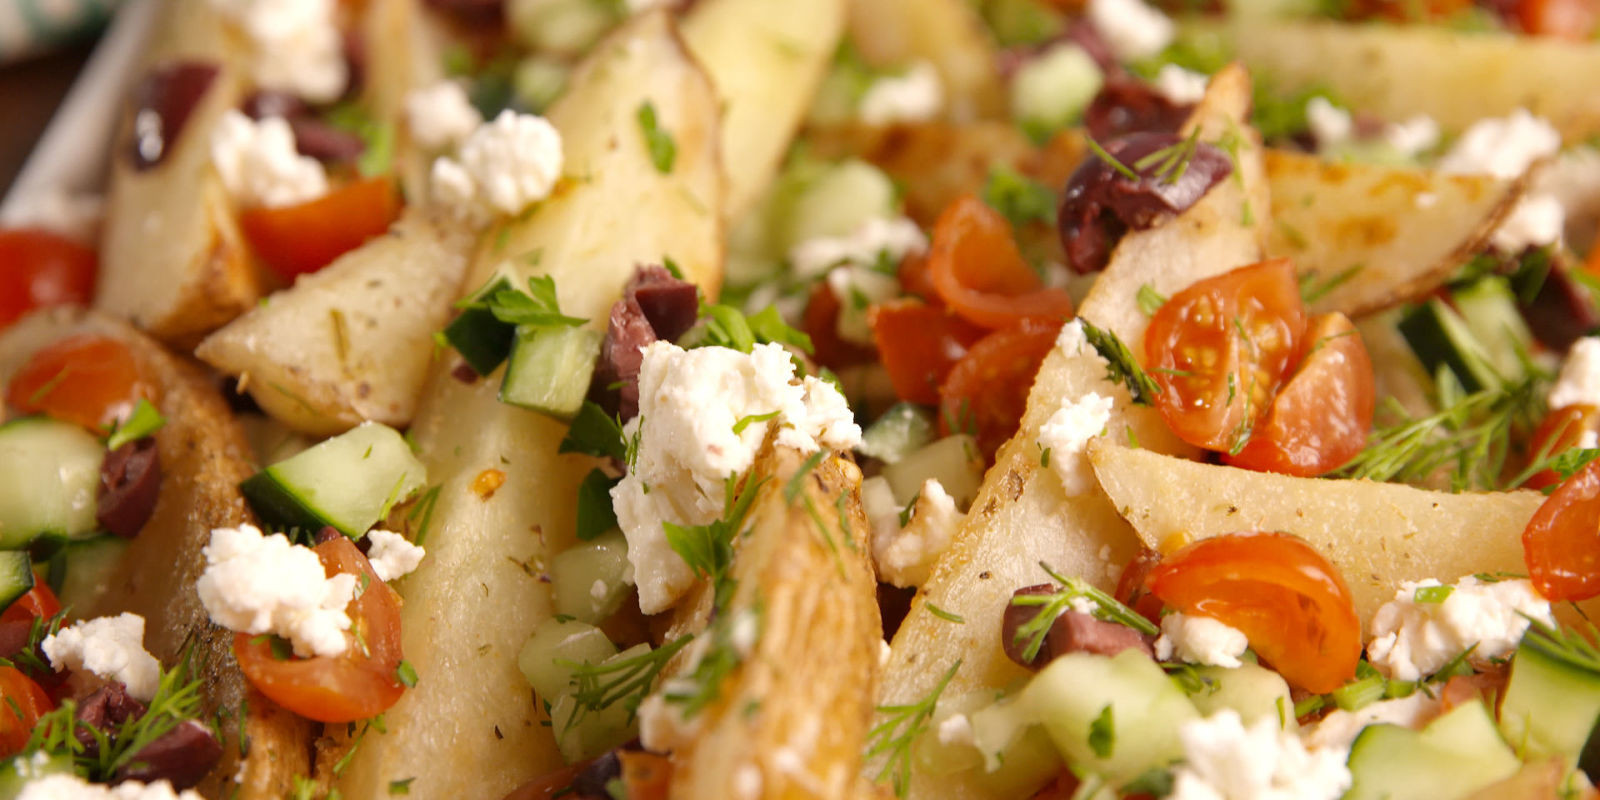 Healthy Potato Side Dishes  30 Healthy Potato Recipes Healthy Side Dishes Made with